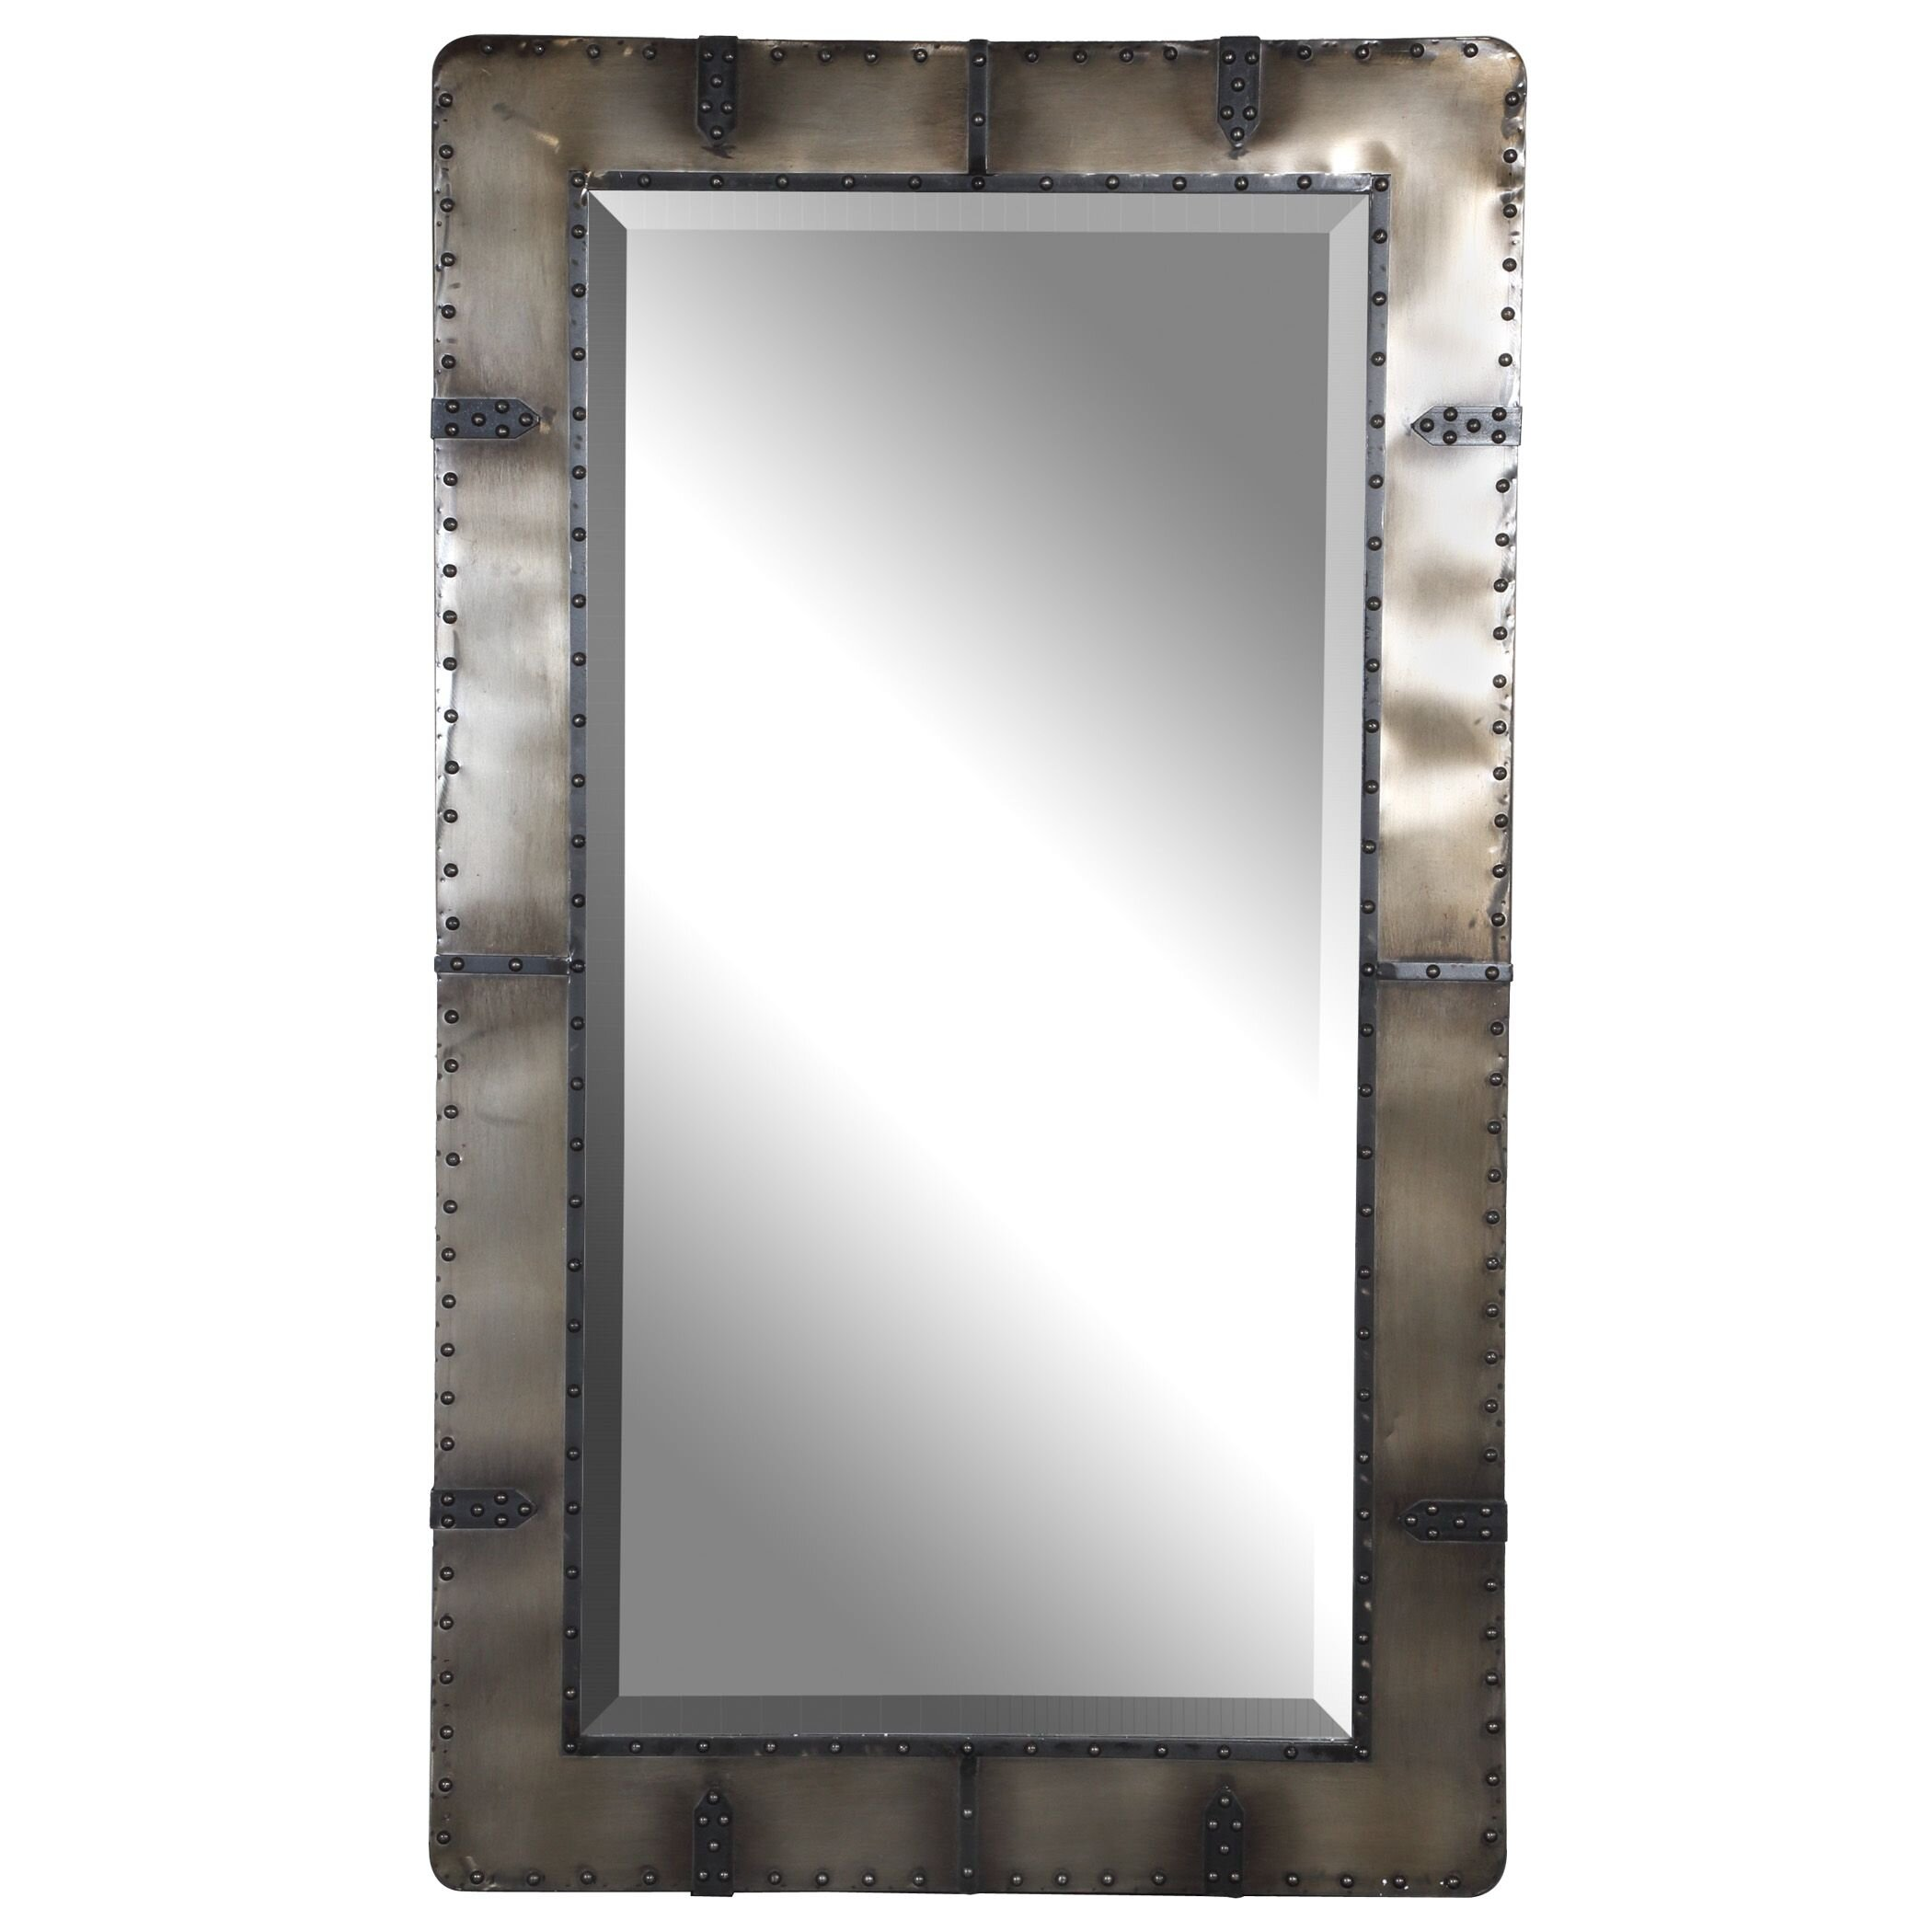 Black Williston Forge Wall Mirrors You Ll Love In 2021 Wayfair